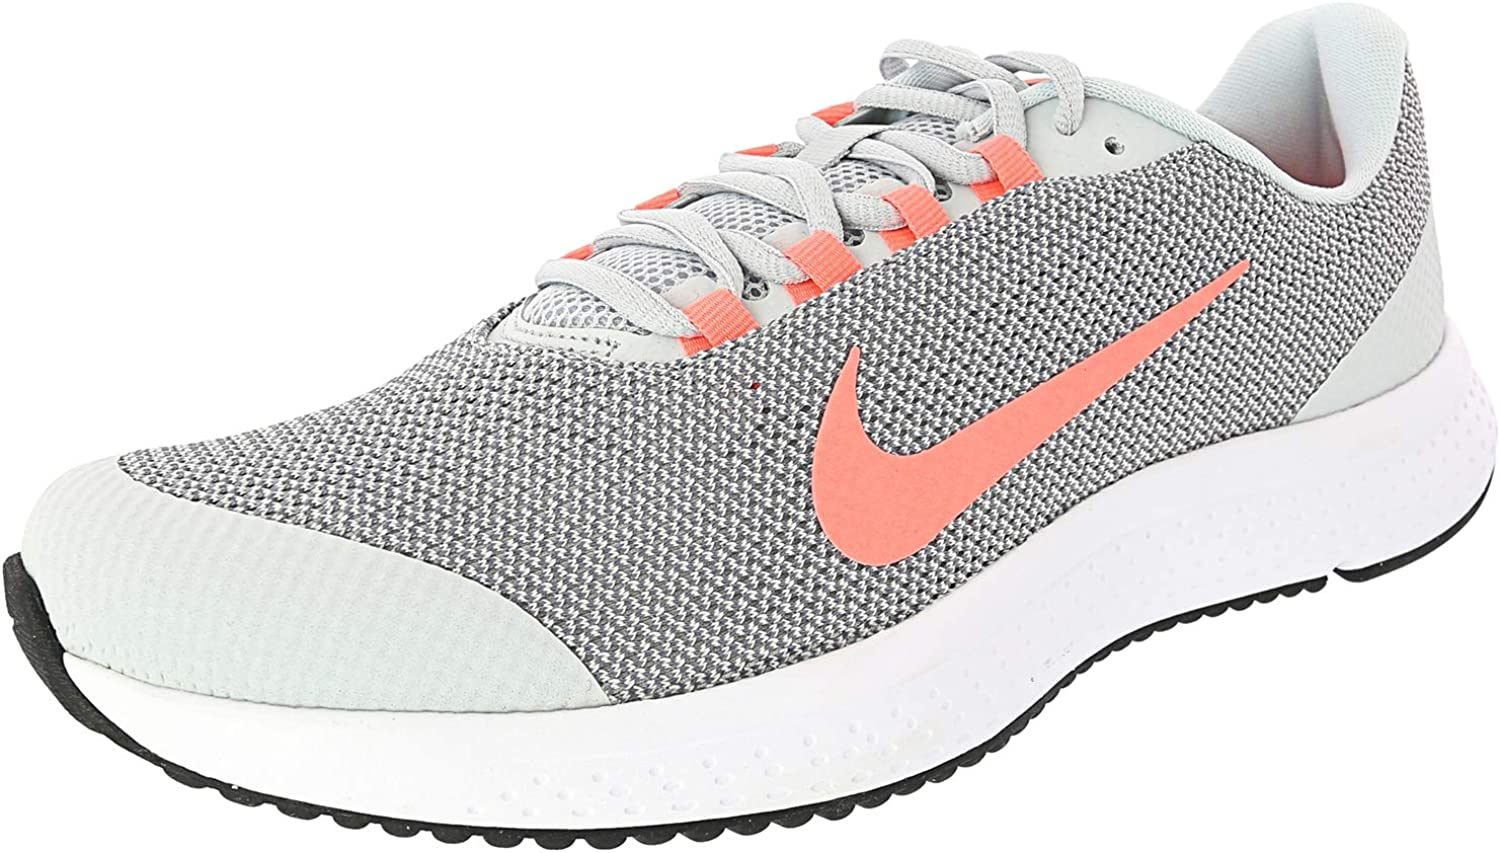 Nike Runallday Athletic Lifestyle Zapatillas de Correr para Mujer, (Cool Grey/Lava Glow/Black), 42 EU: Amazon.es: Zapatos y complementos